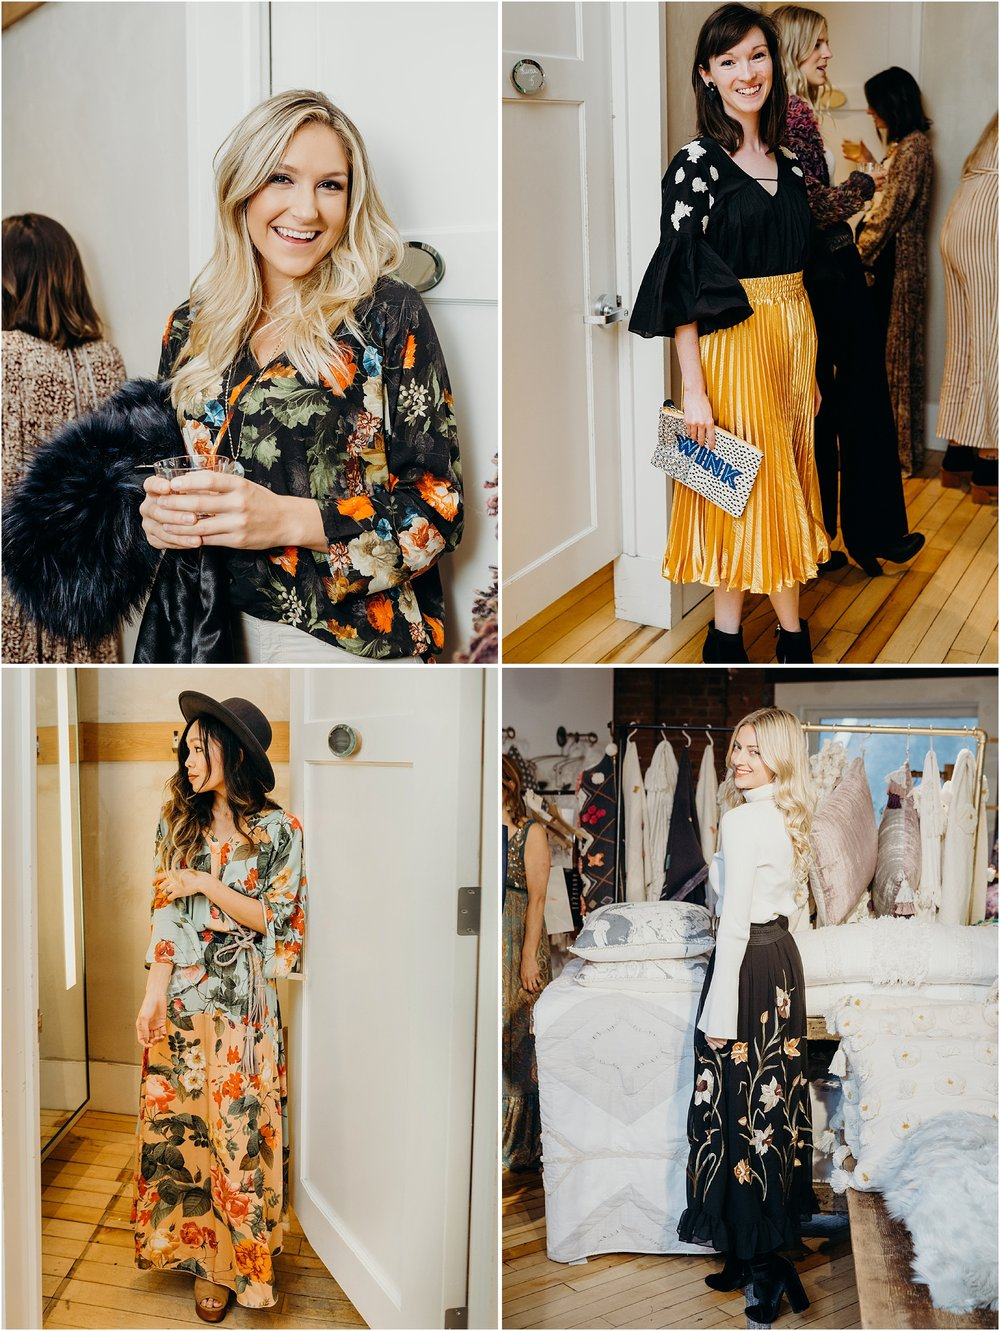 Joe_Mac_Creative_Philadelphia_Photograhy_Anthropologie_Fall_Fashion_0004.jpg